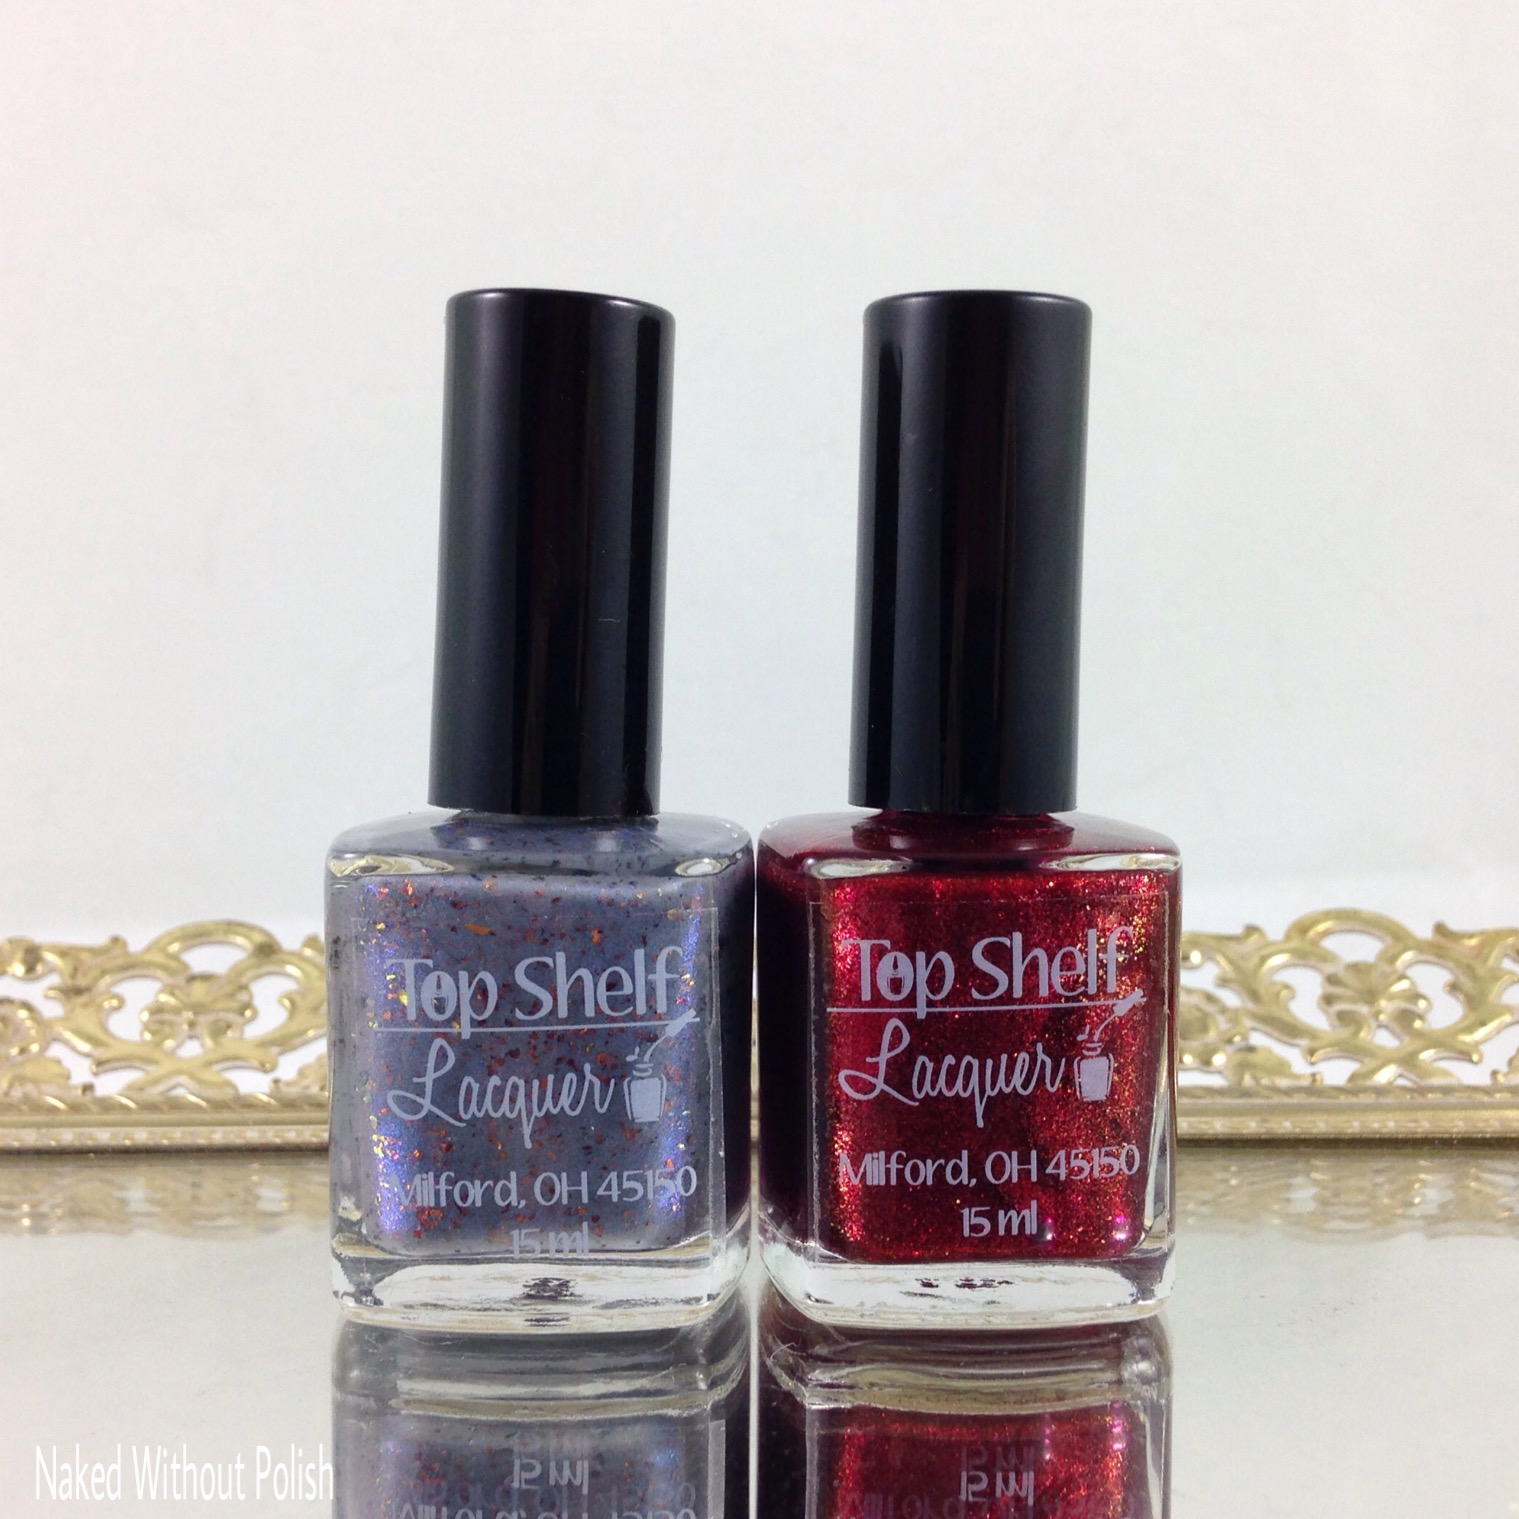 Top-Shelf-Lacquer-Crystals-Charity-Lacquers-1